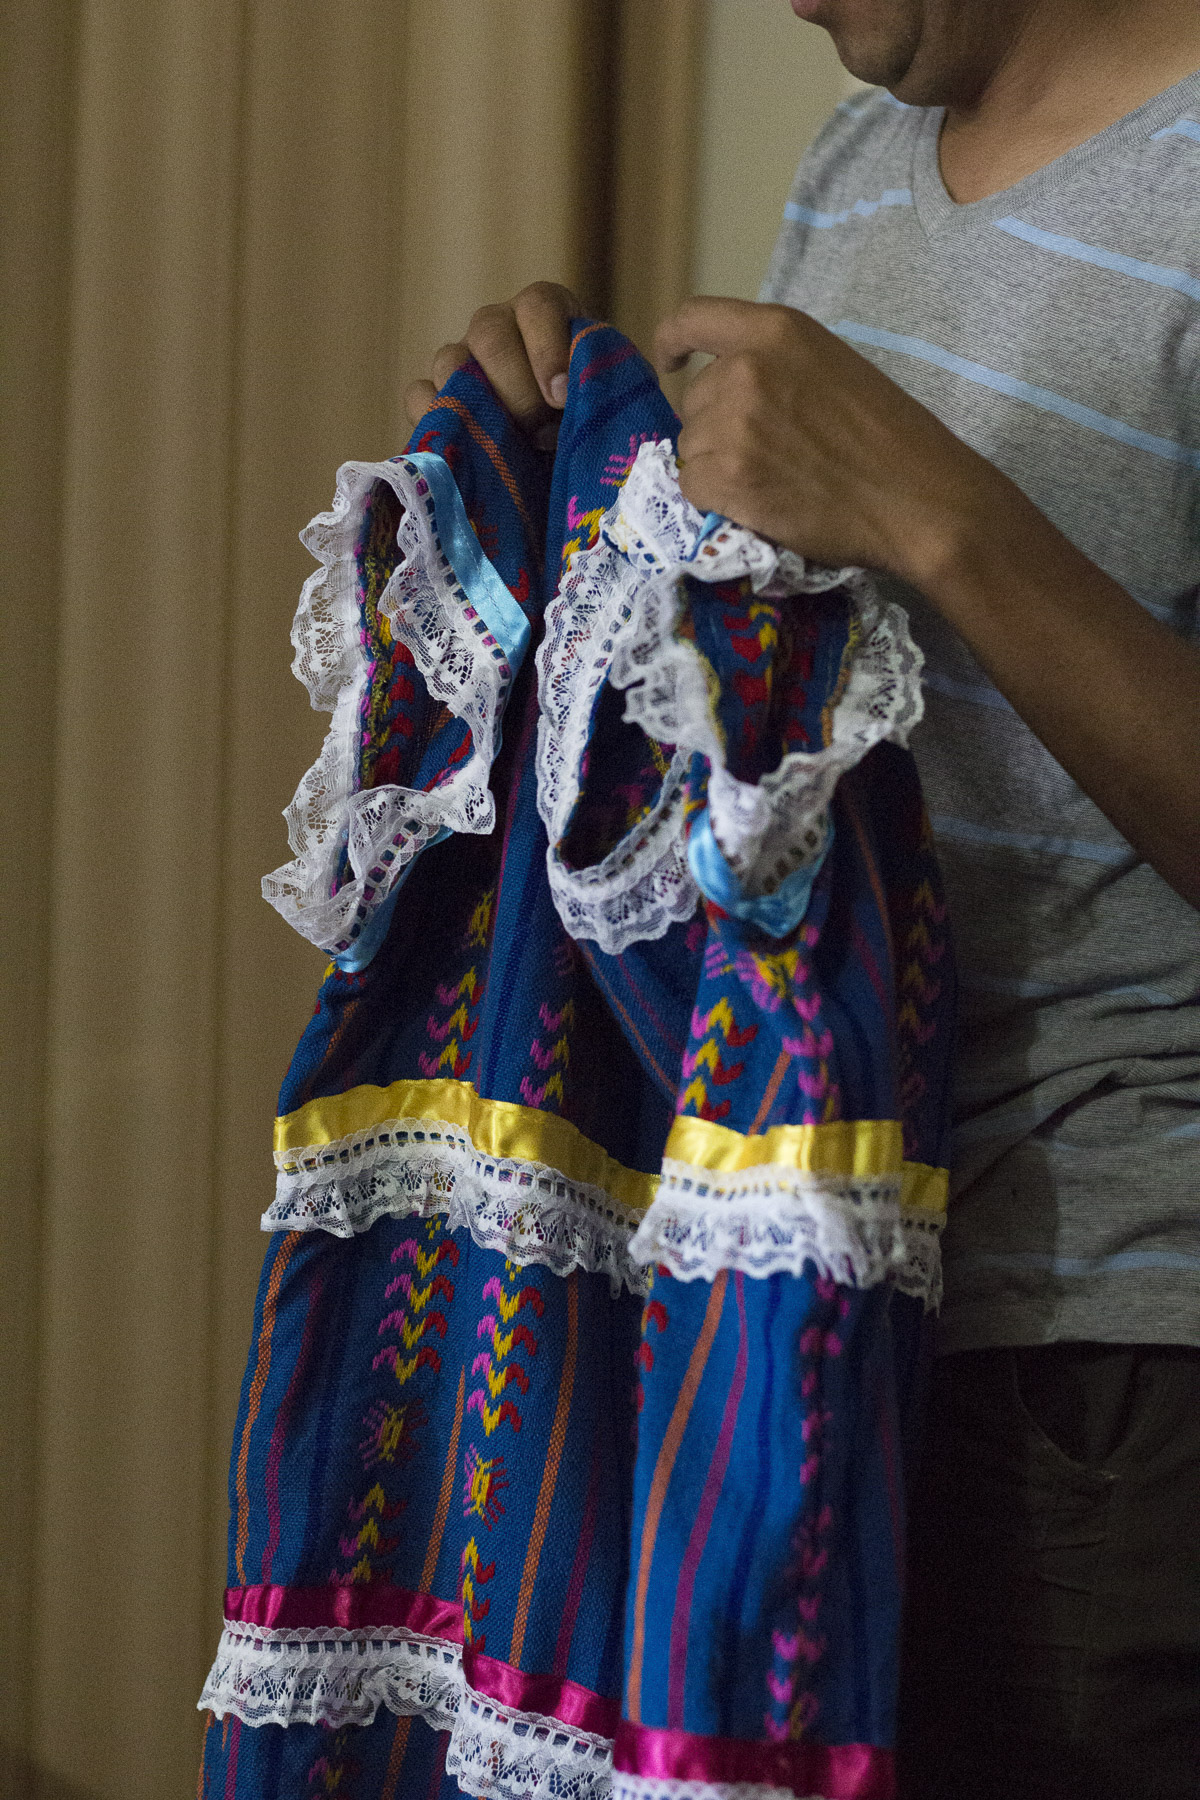 Benito Bravo holds up a costume made by indigenous women in Mexico, noting the stitching and careful attention to detail in the handiwork.  Gabrielle Narcisse and Deleelah Saleh for Picture Justice. August 22, 2017.